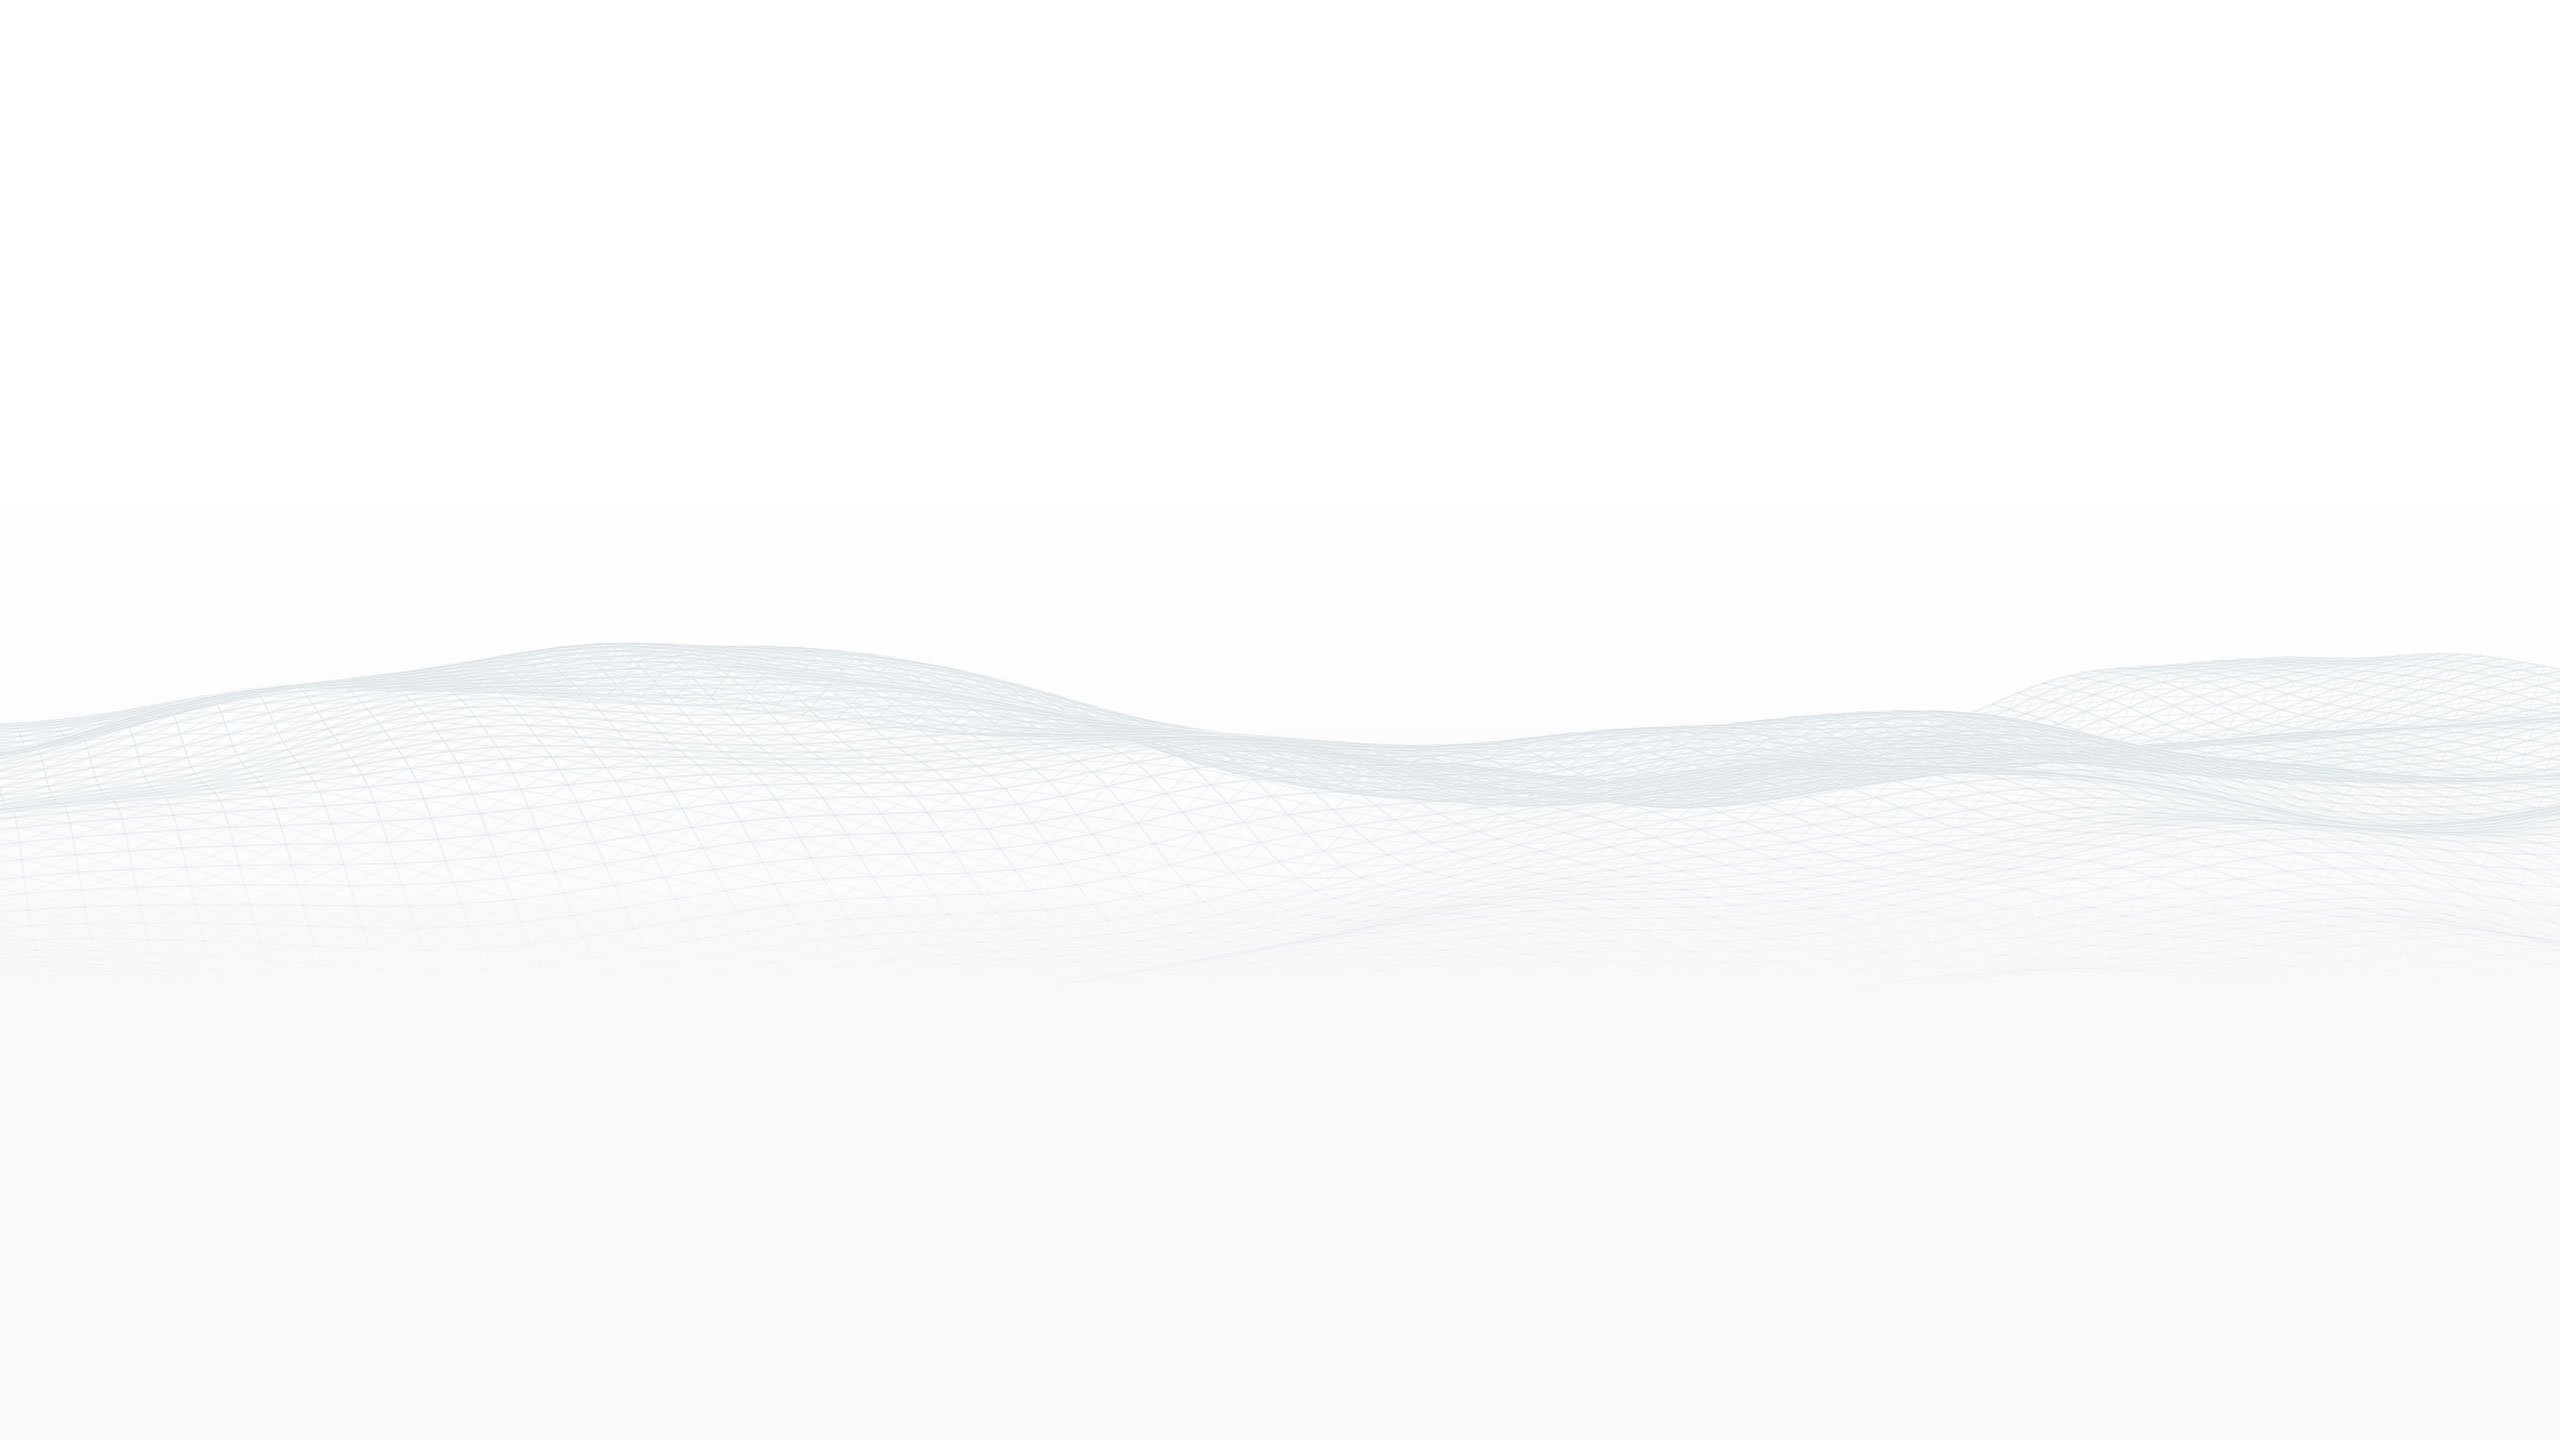 BACKGROUND homepage 3D mesh 2